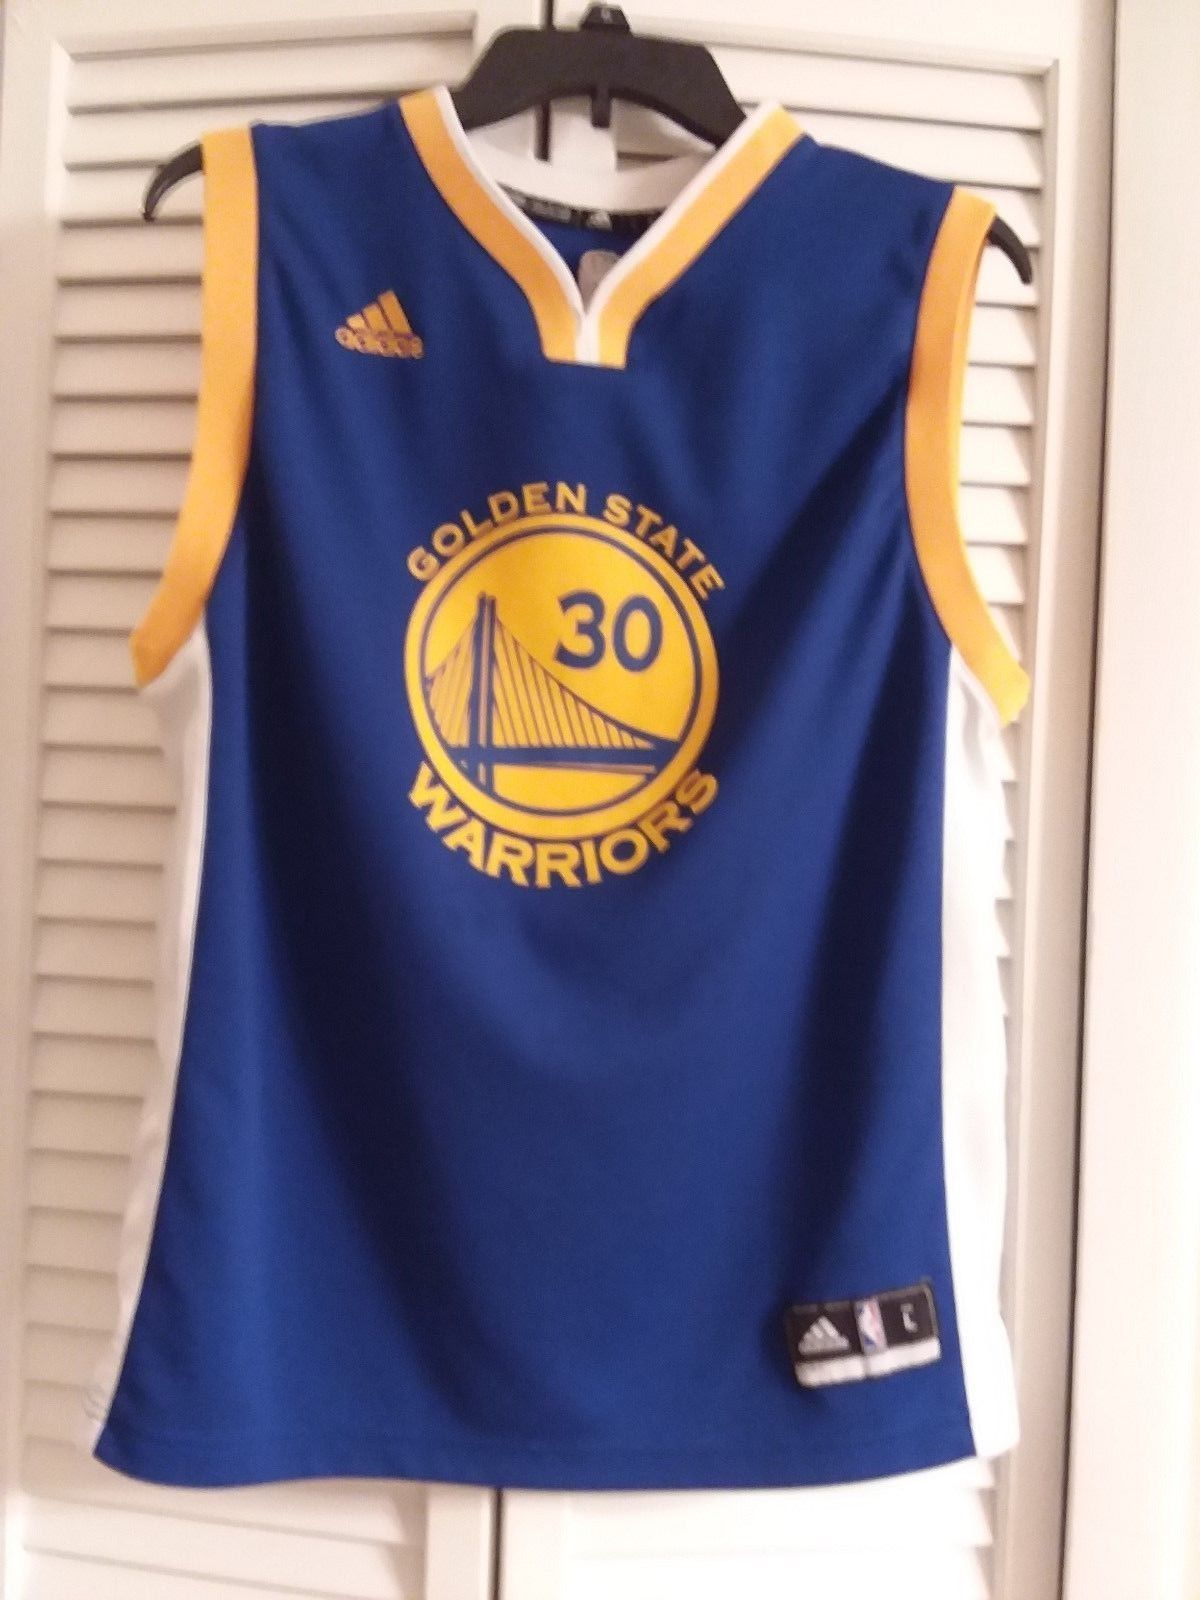 Stephen Curry Jersey China Edition Stephen Curry Jerseys The Best Stephen Curry Jerseys Jersey Stephen Curry Jersey Stephen Curry Warriors Stephen Curry